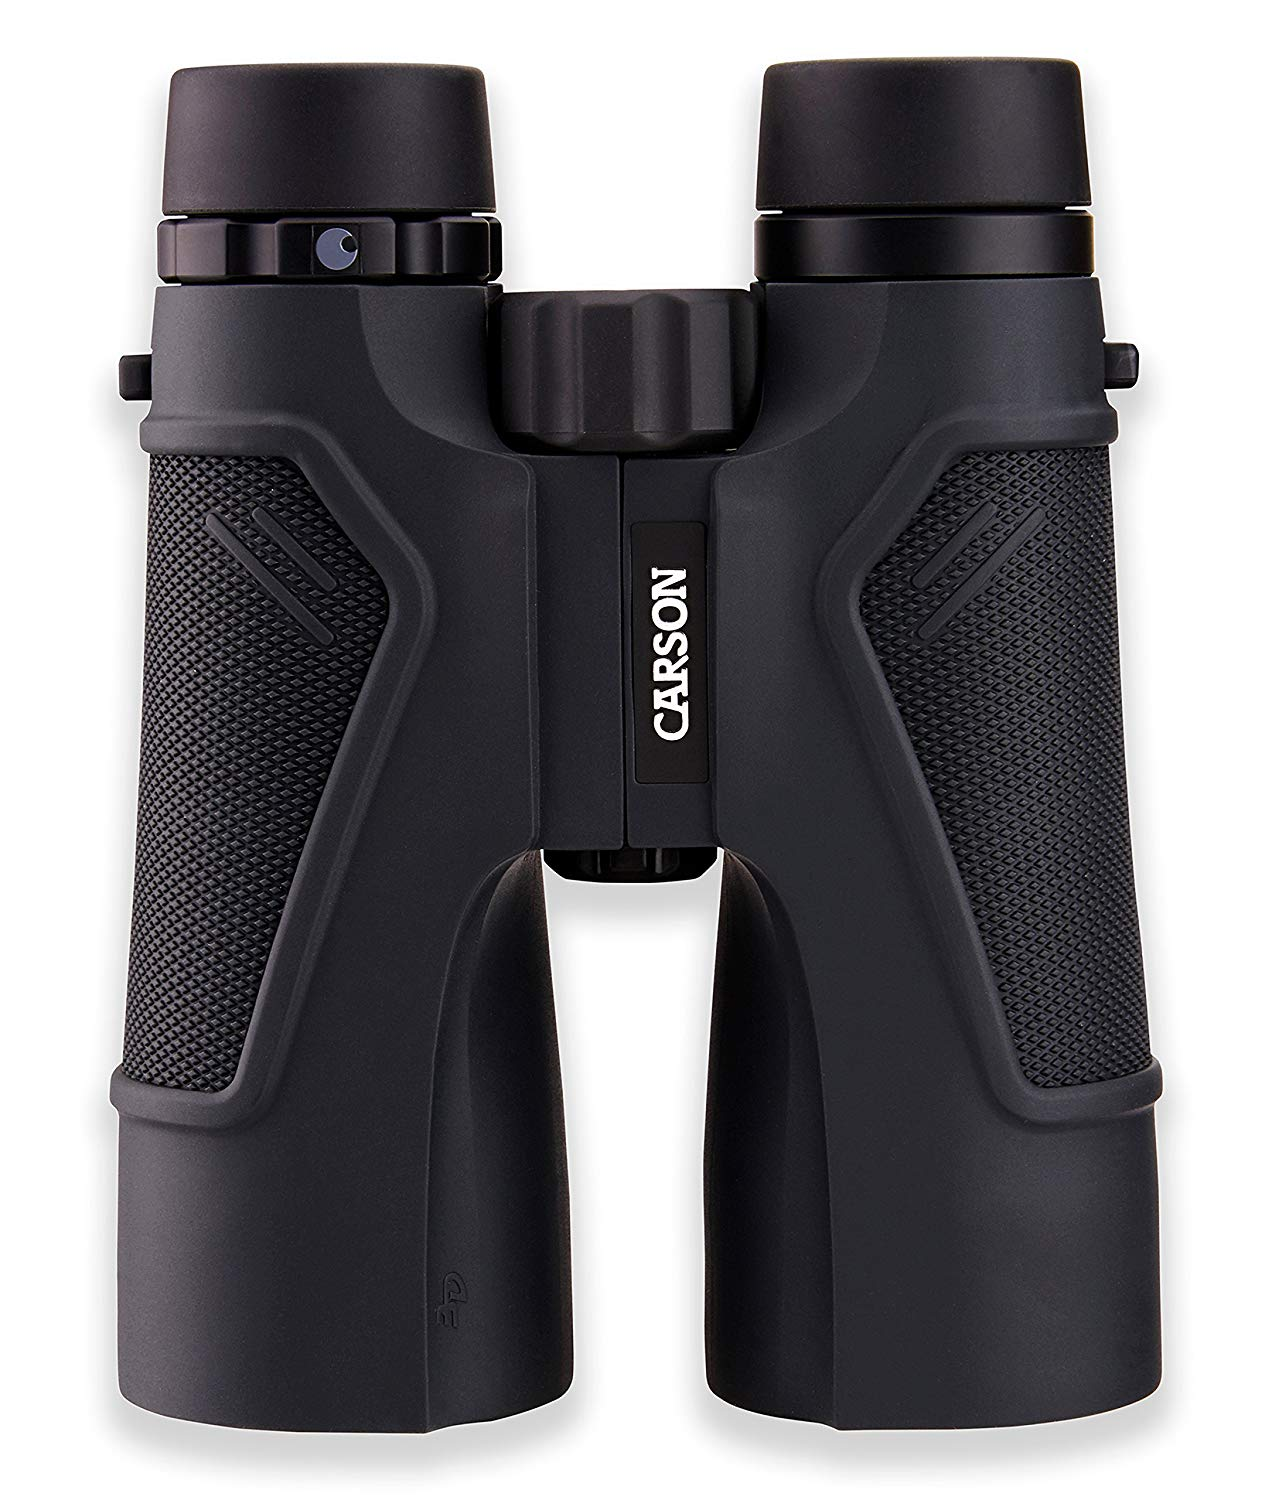 Top 10 Best Low Light Binoculars For Hunting 2021 Reviews 4